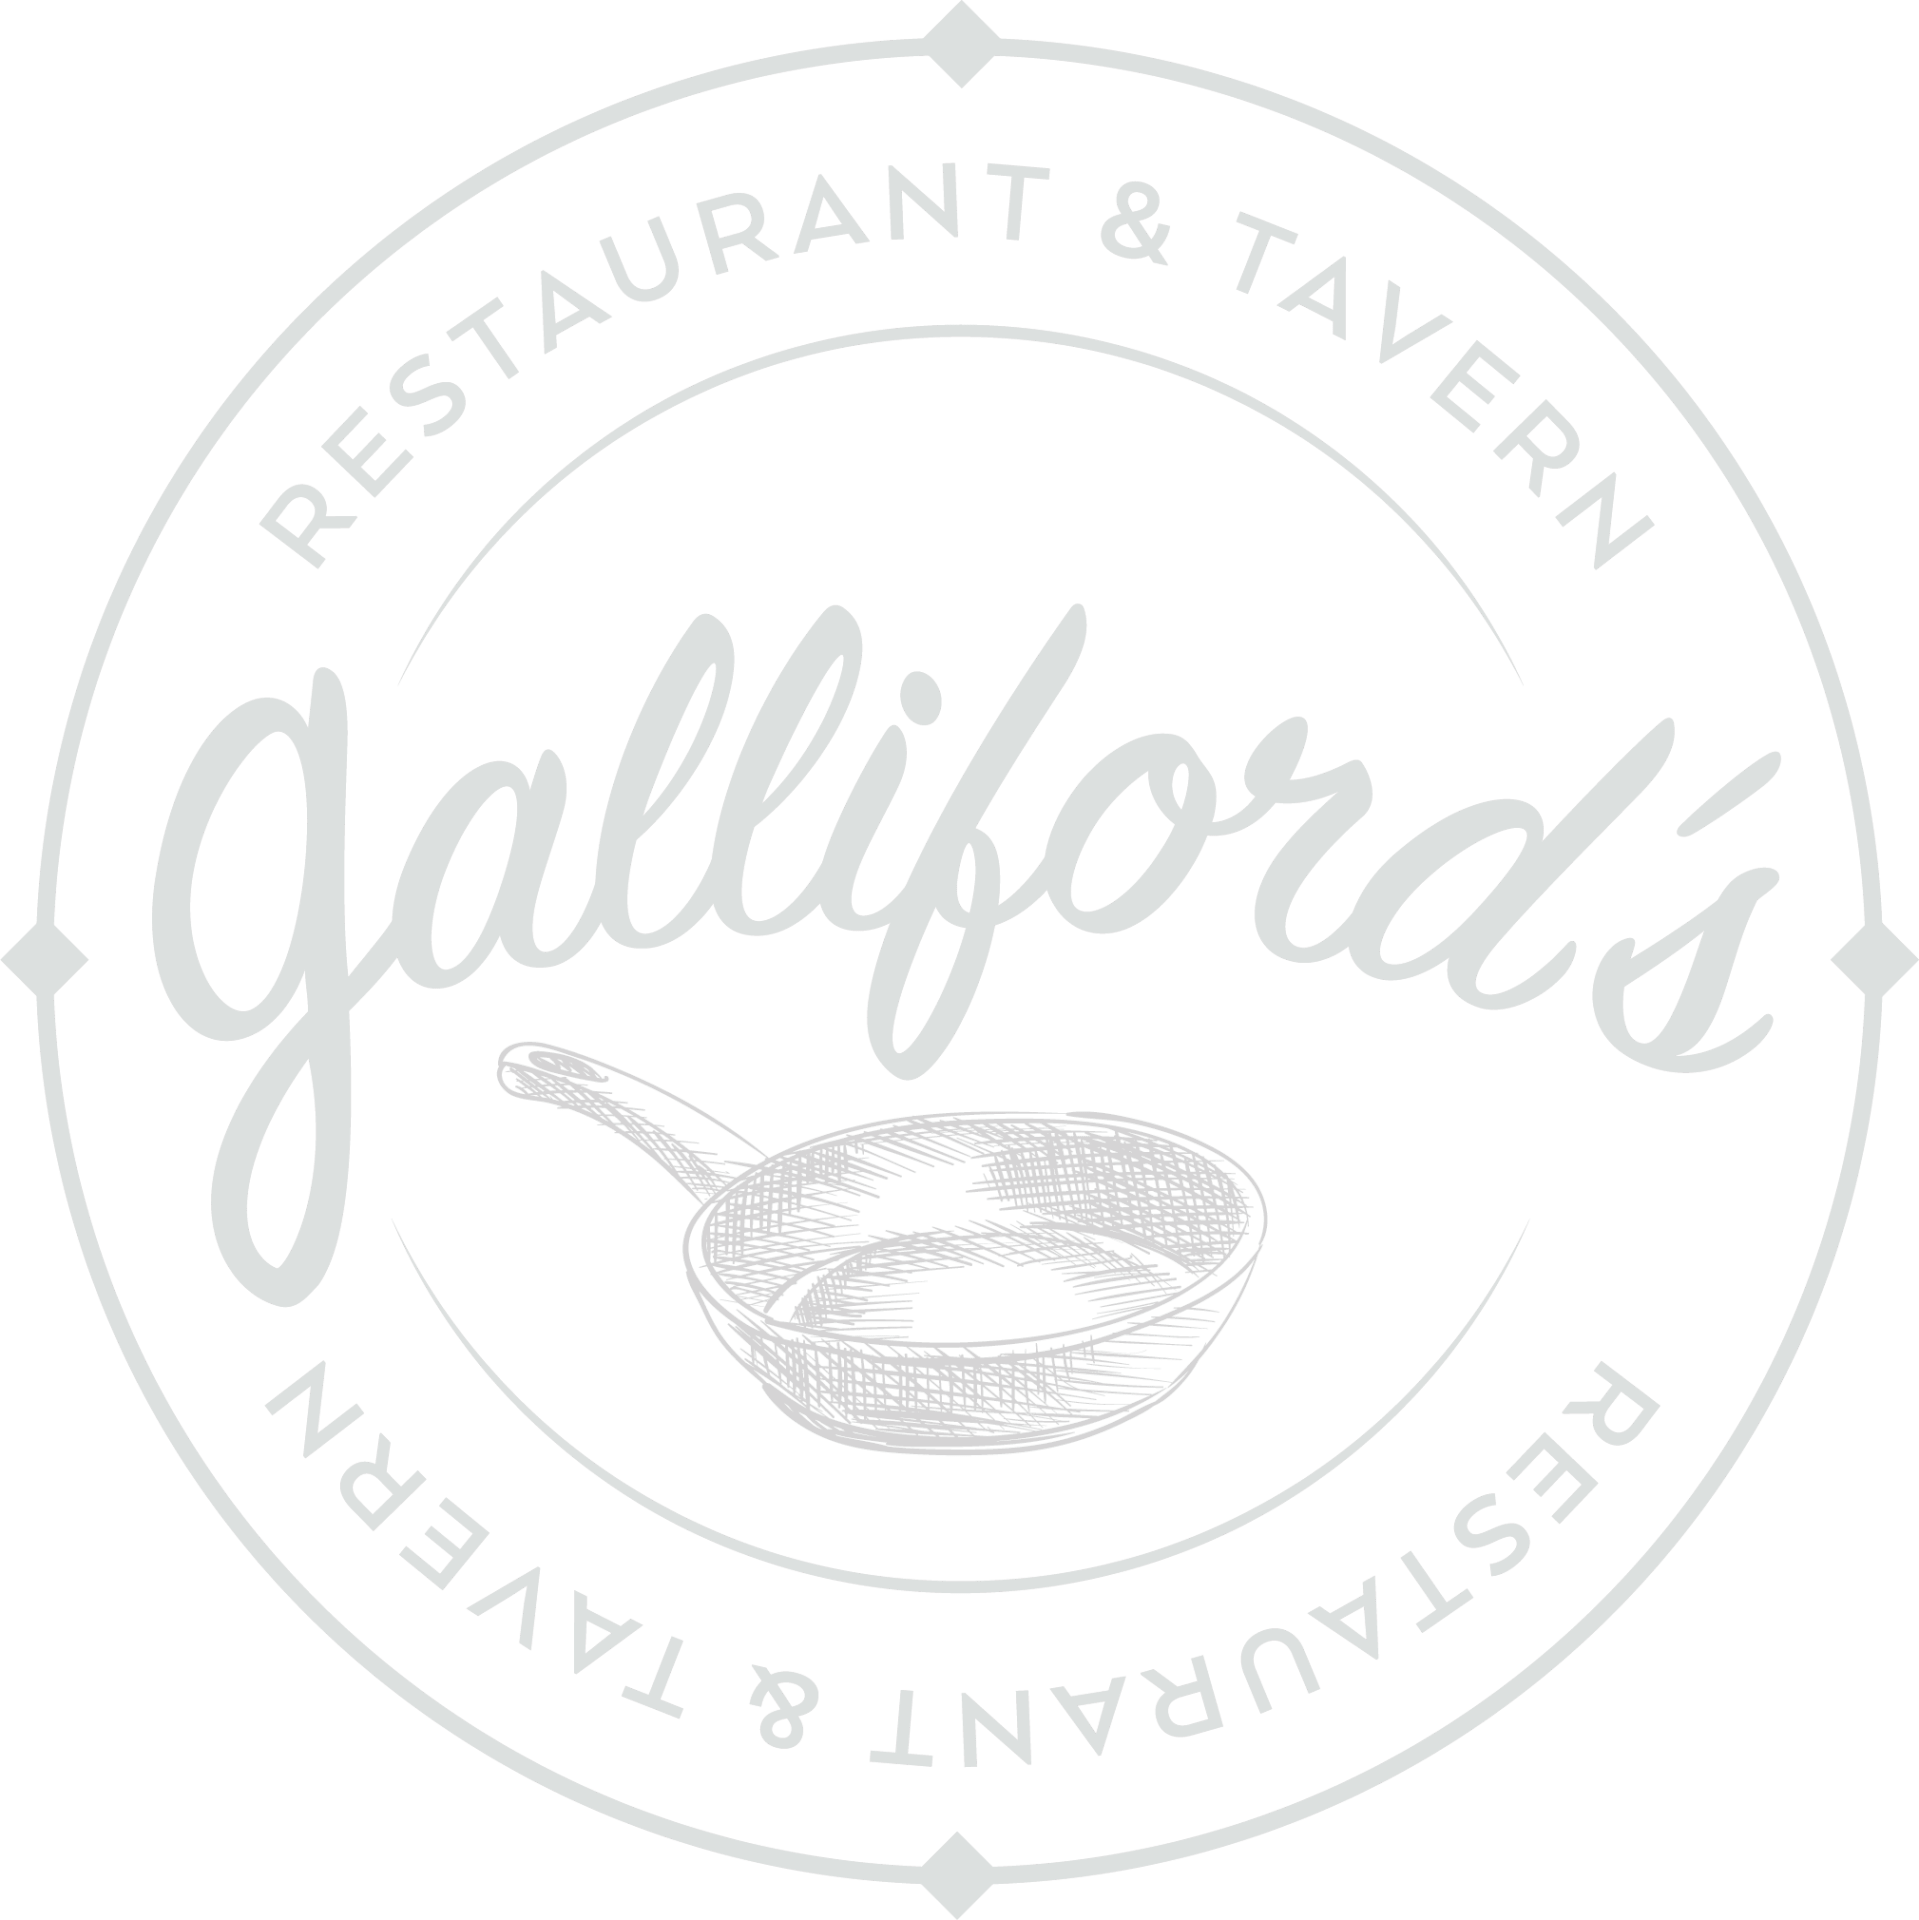 Galliford's